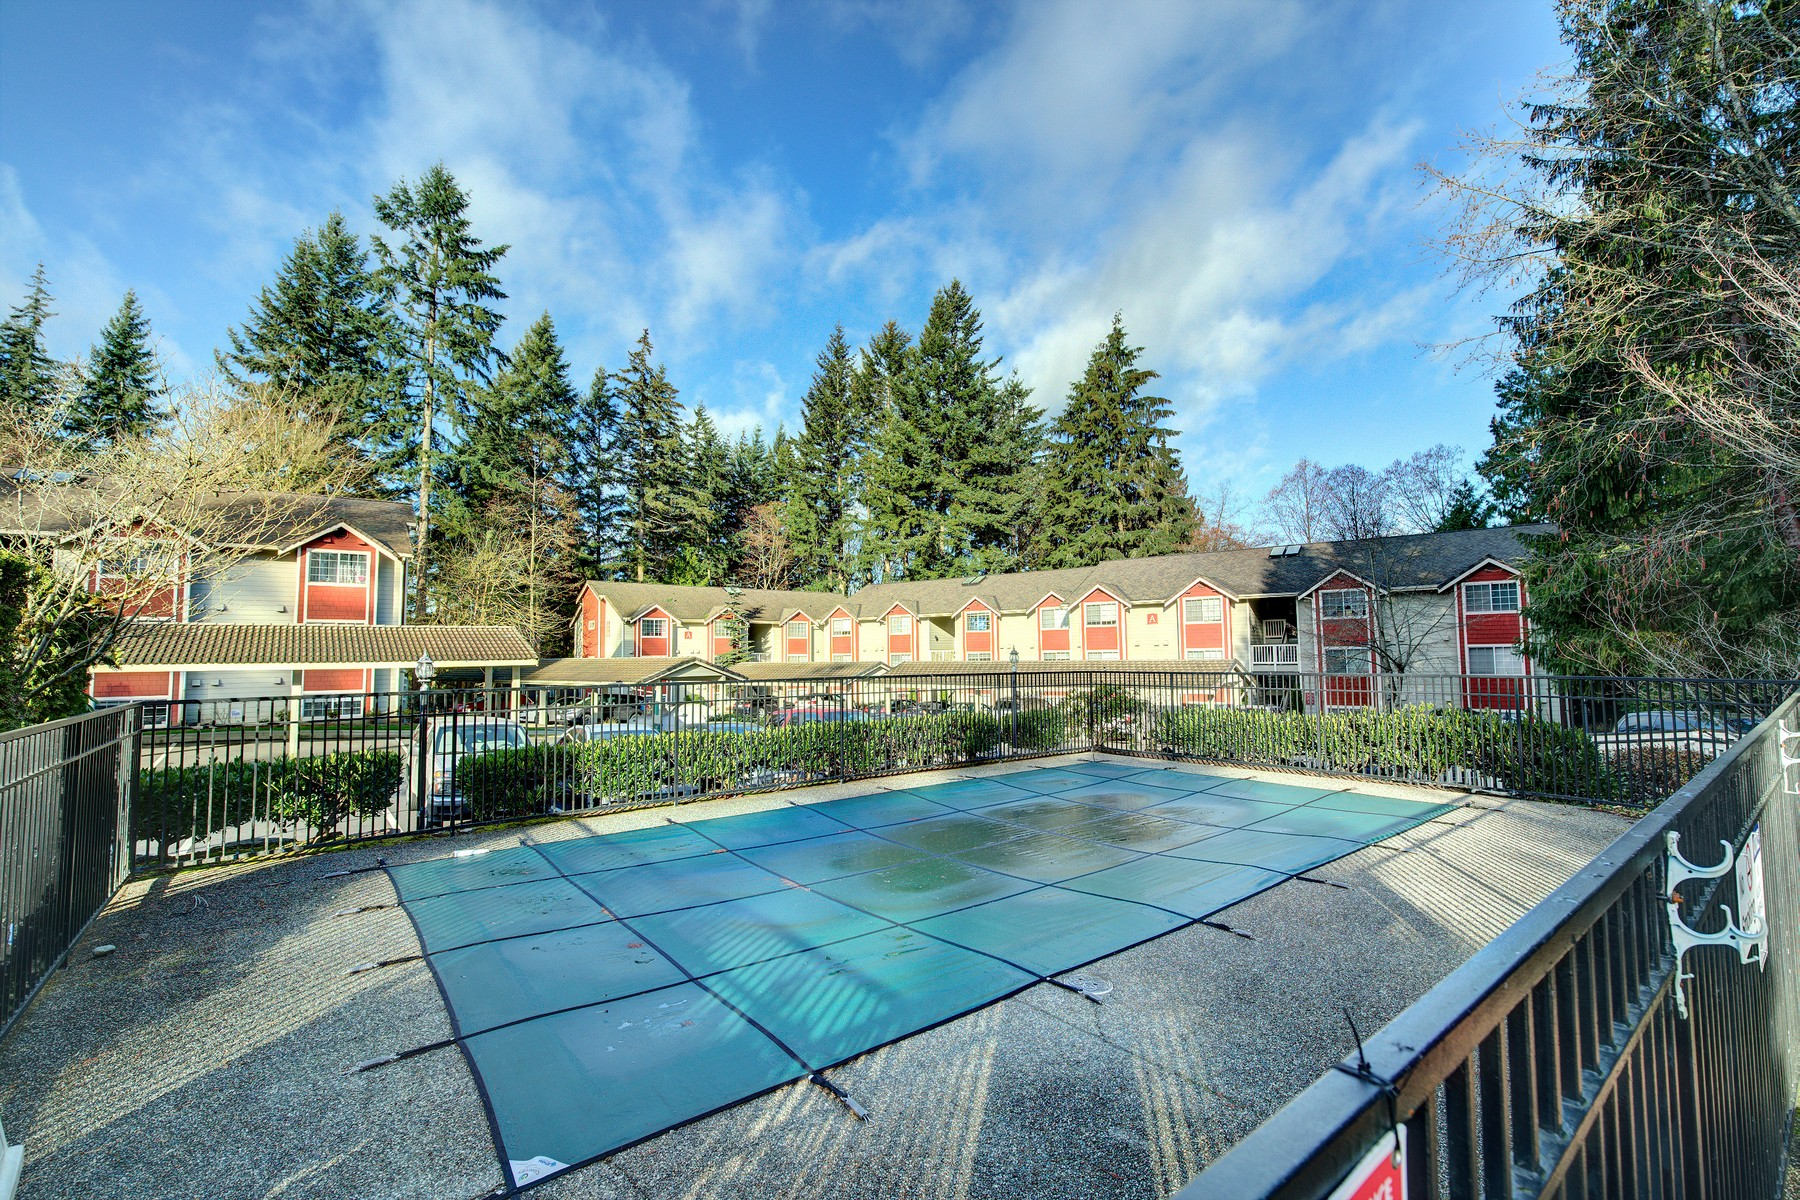 Additional photo for property listing at Mill Creek Country Club Estates 15433 Country Club Dr #G101 Mill Creek, Washington 98012 United States